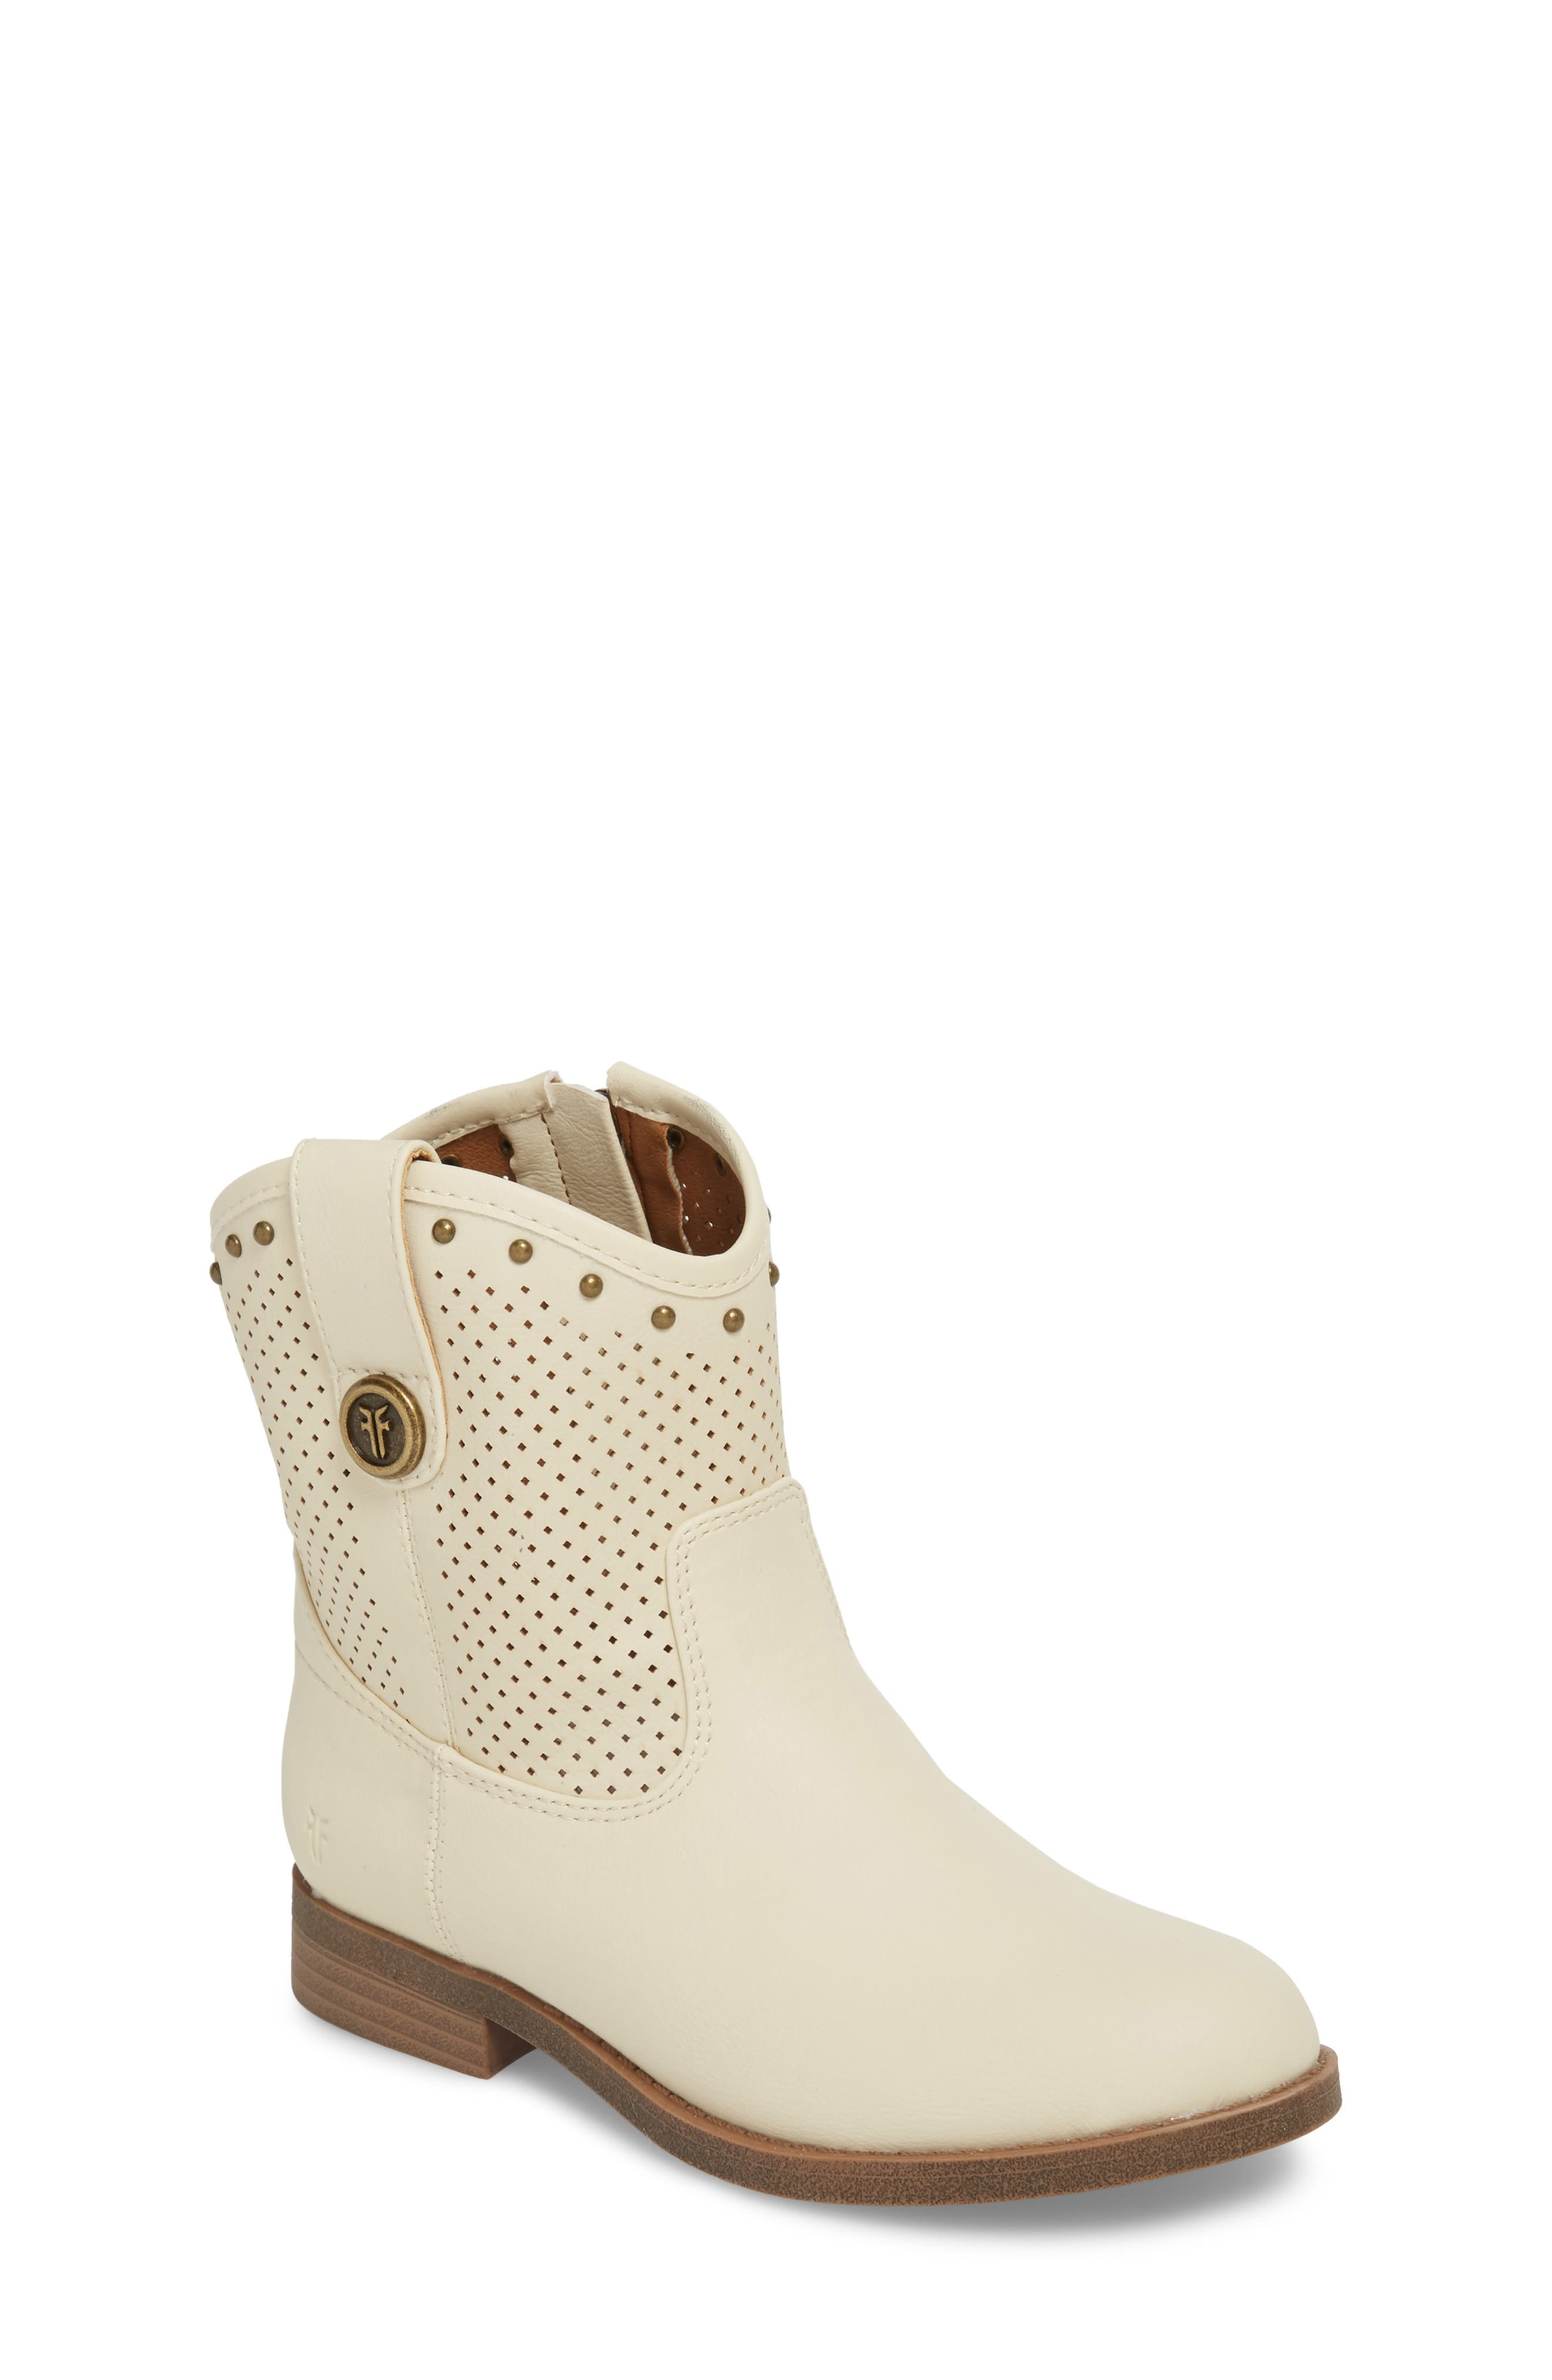 Melissa Perforated Button Boot,                             Main thumbnail 1, color,                             100